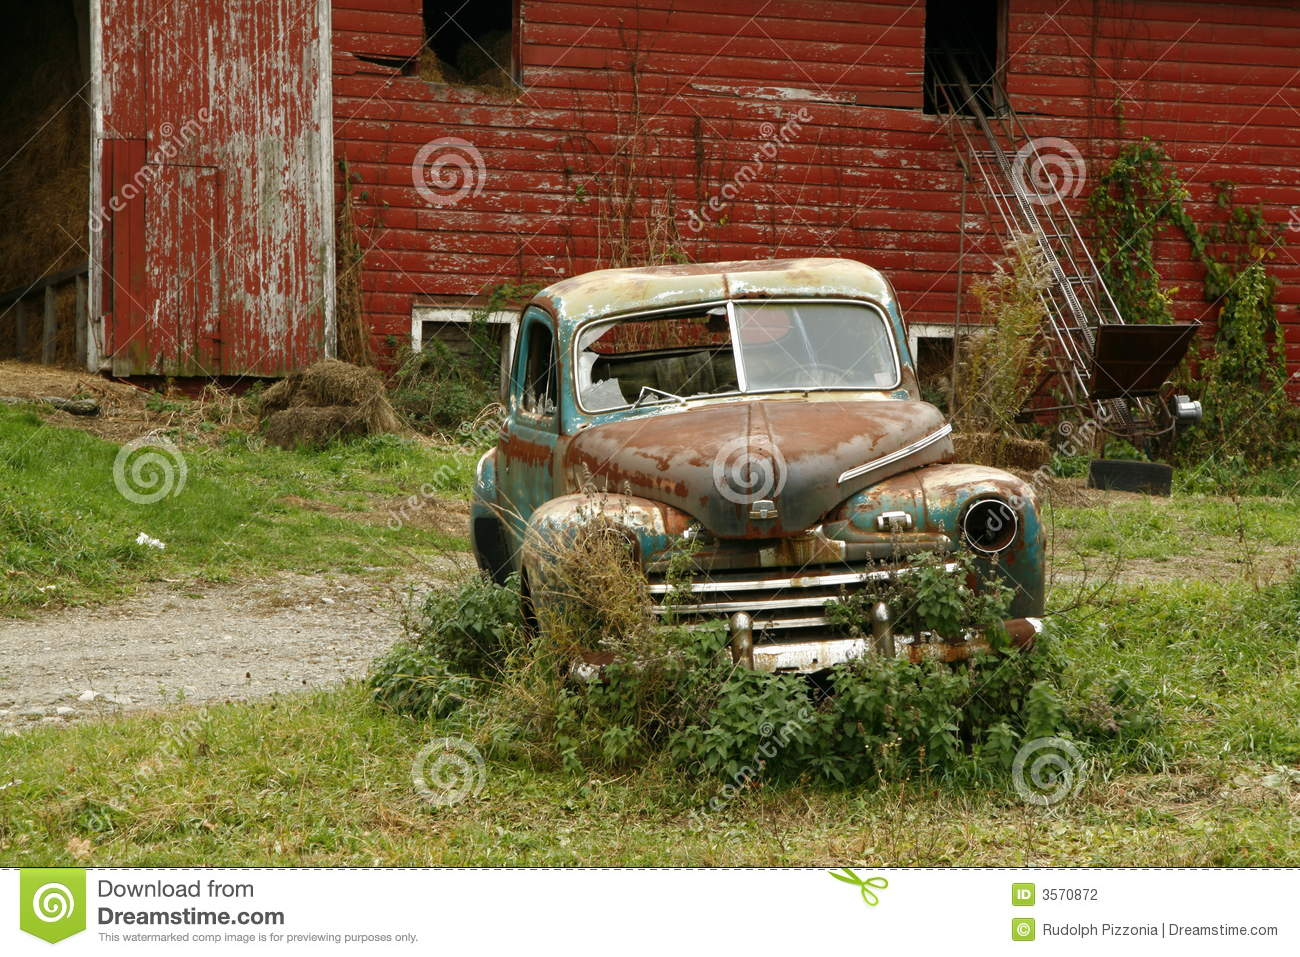 Pictures Of Old Cars In Barns